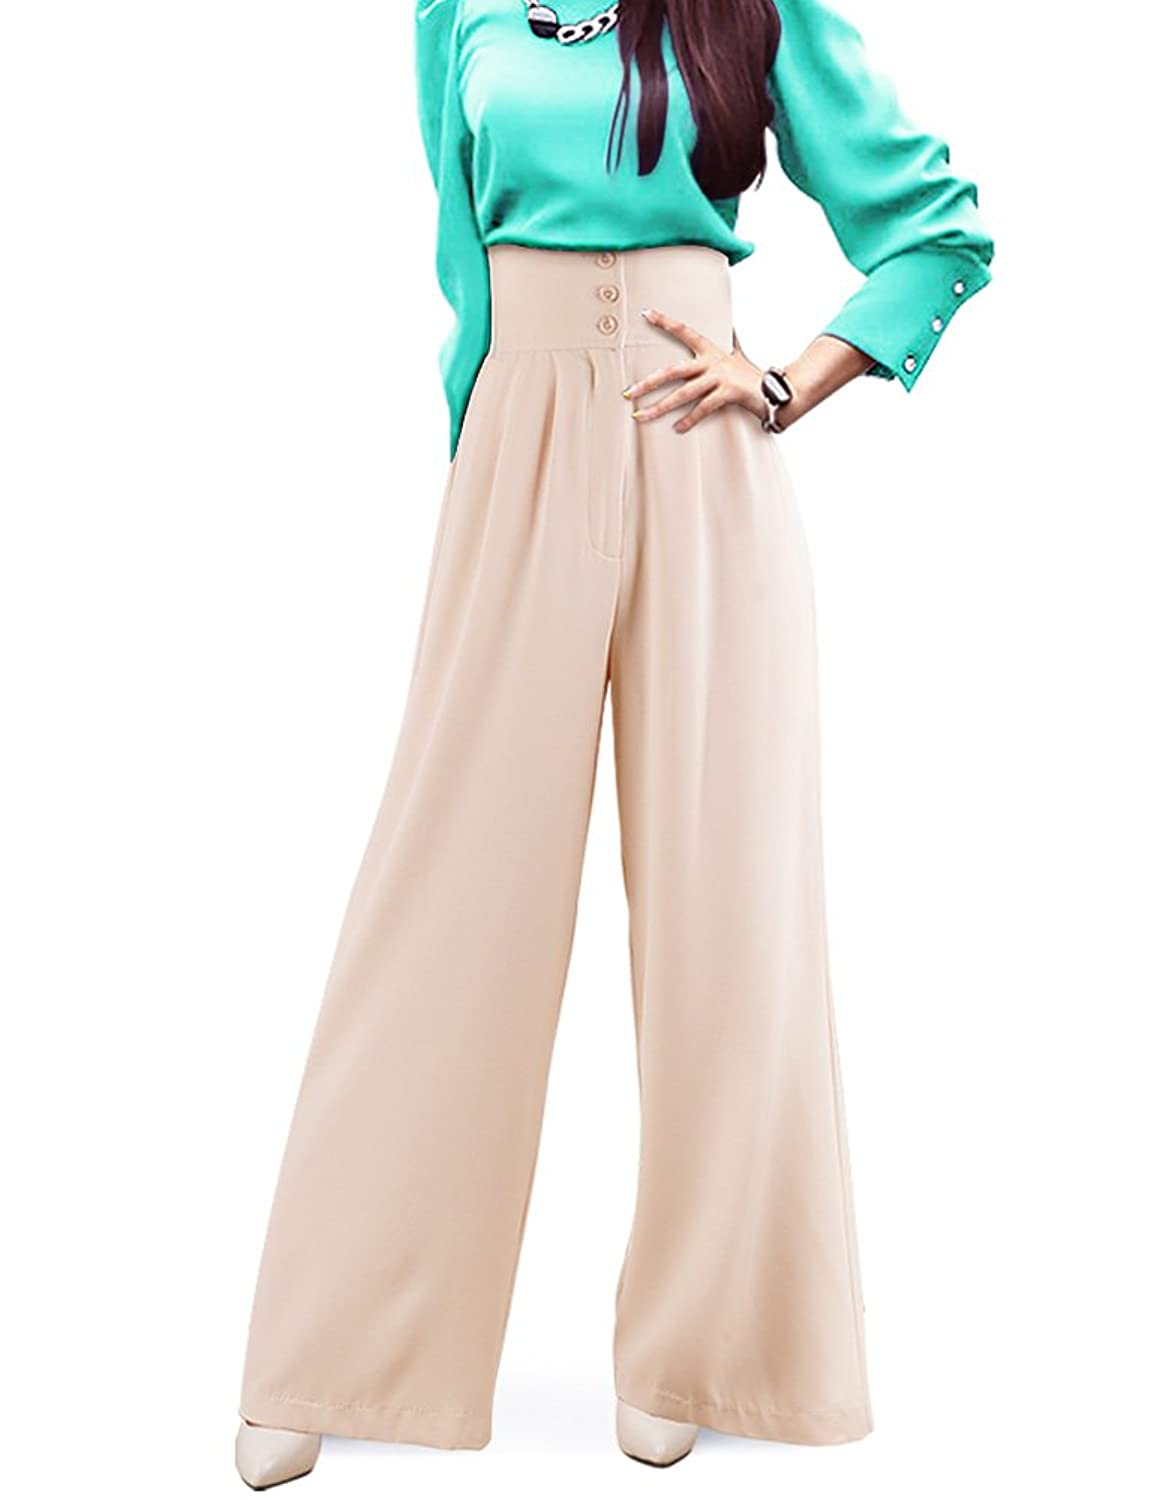 1920s Skirts, Gatsby Skirts, Vintage Pleated Skirts DELUXSEY Silhouette-Lengthening High Waist Wide Leg Pants Palazzo Pants 4 Women $34.99 AT vintagedancer.com